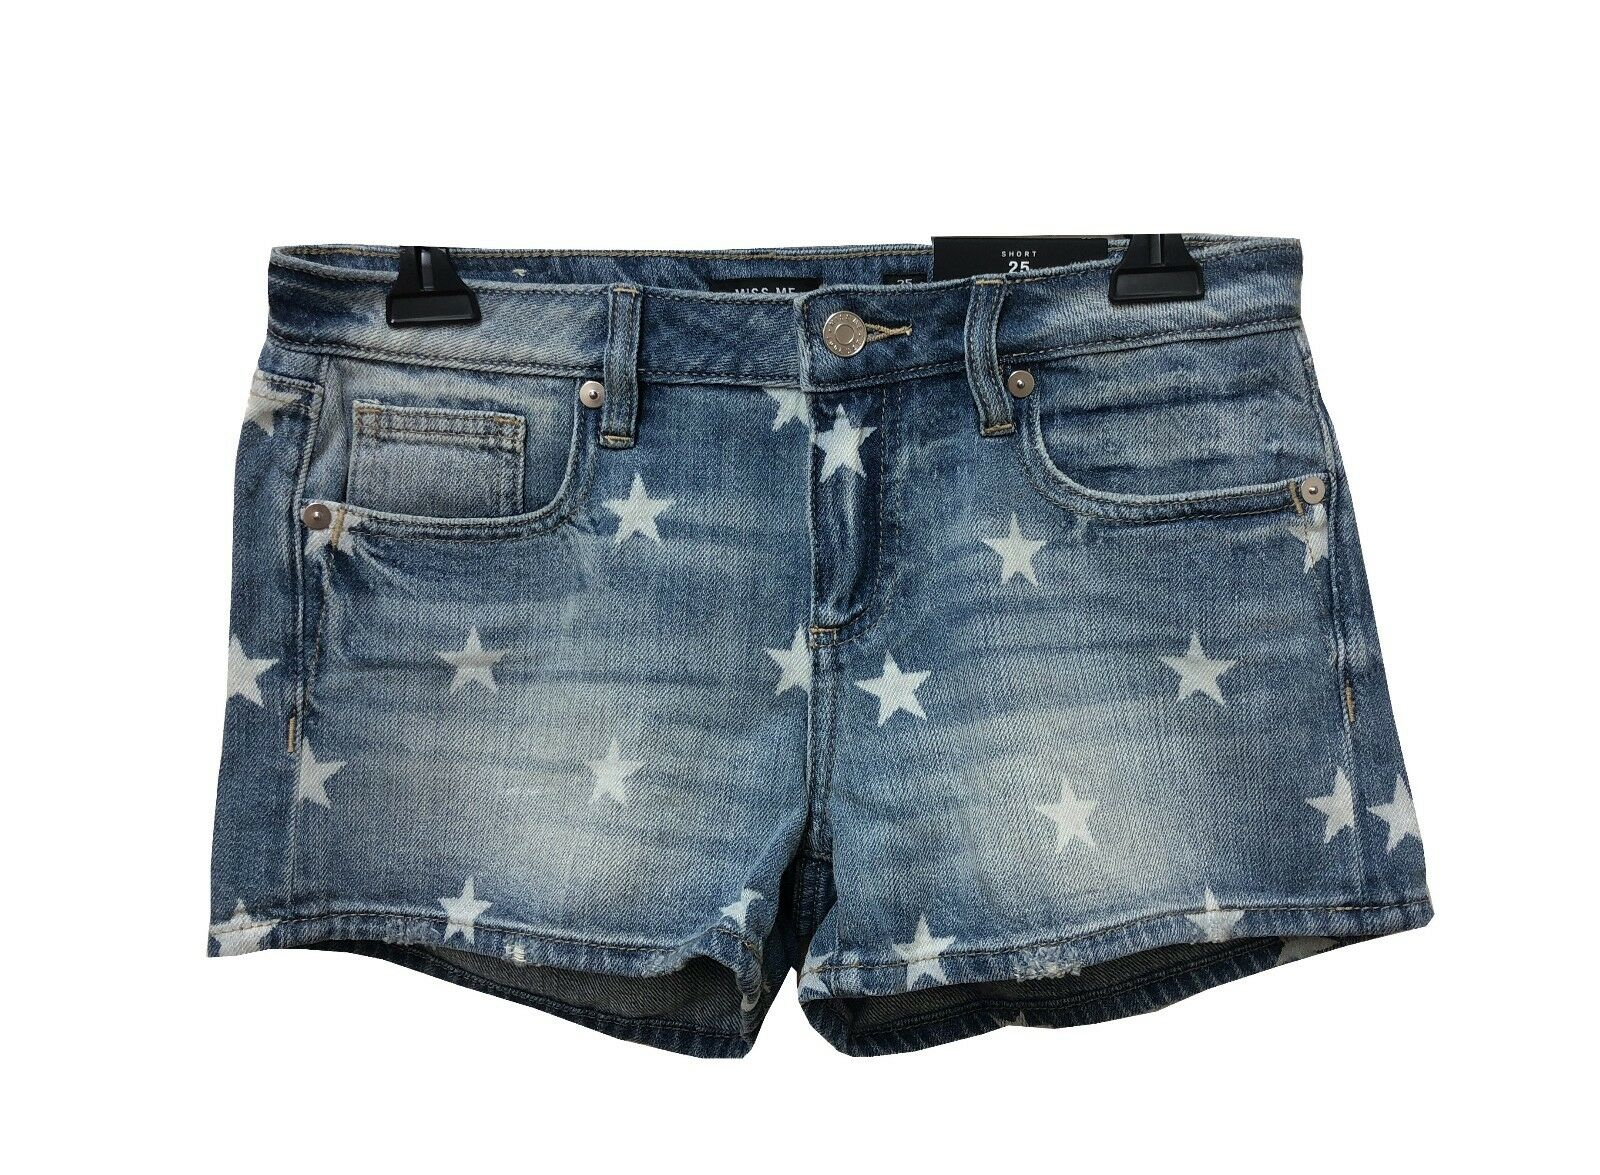 NEW MISS ME Women 4th of July Americana Seeing Stars Vintage Denim shorts Jeans